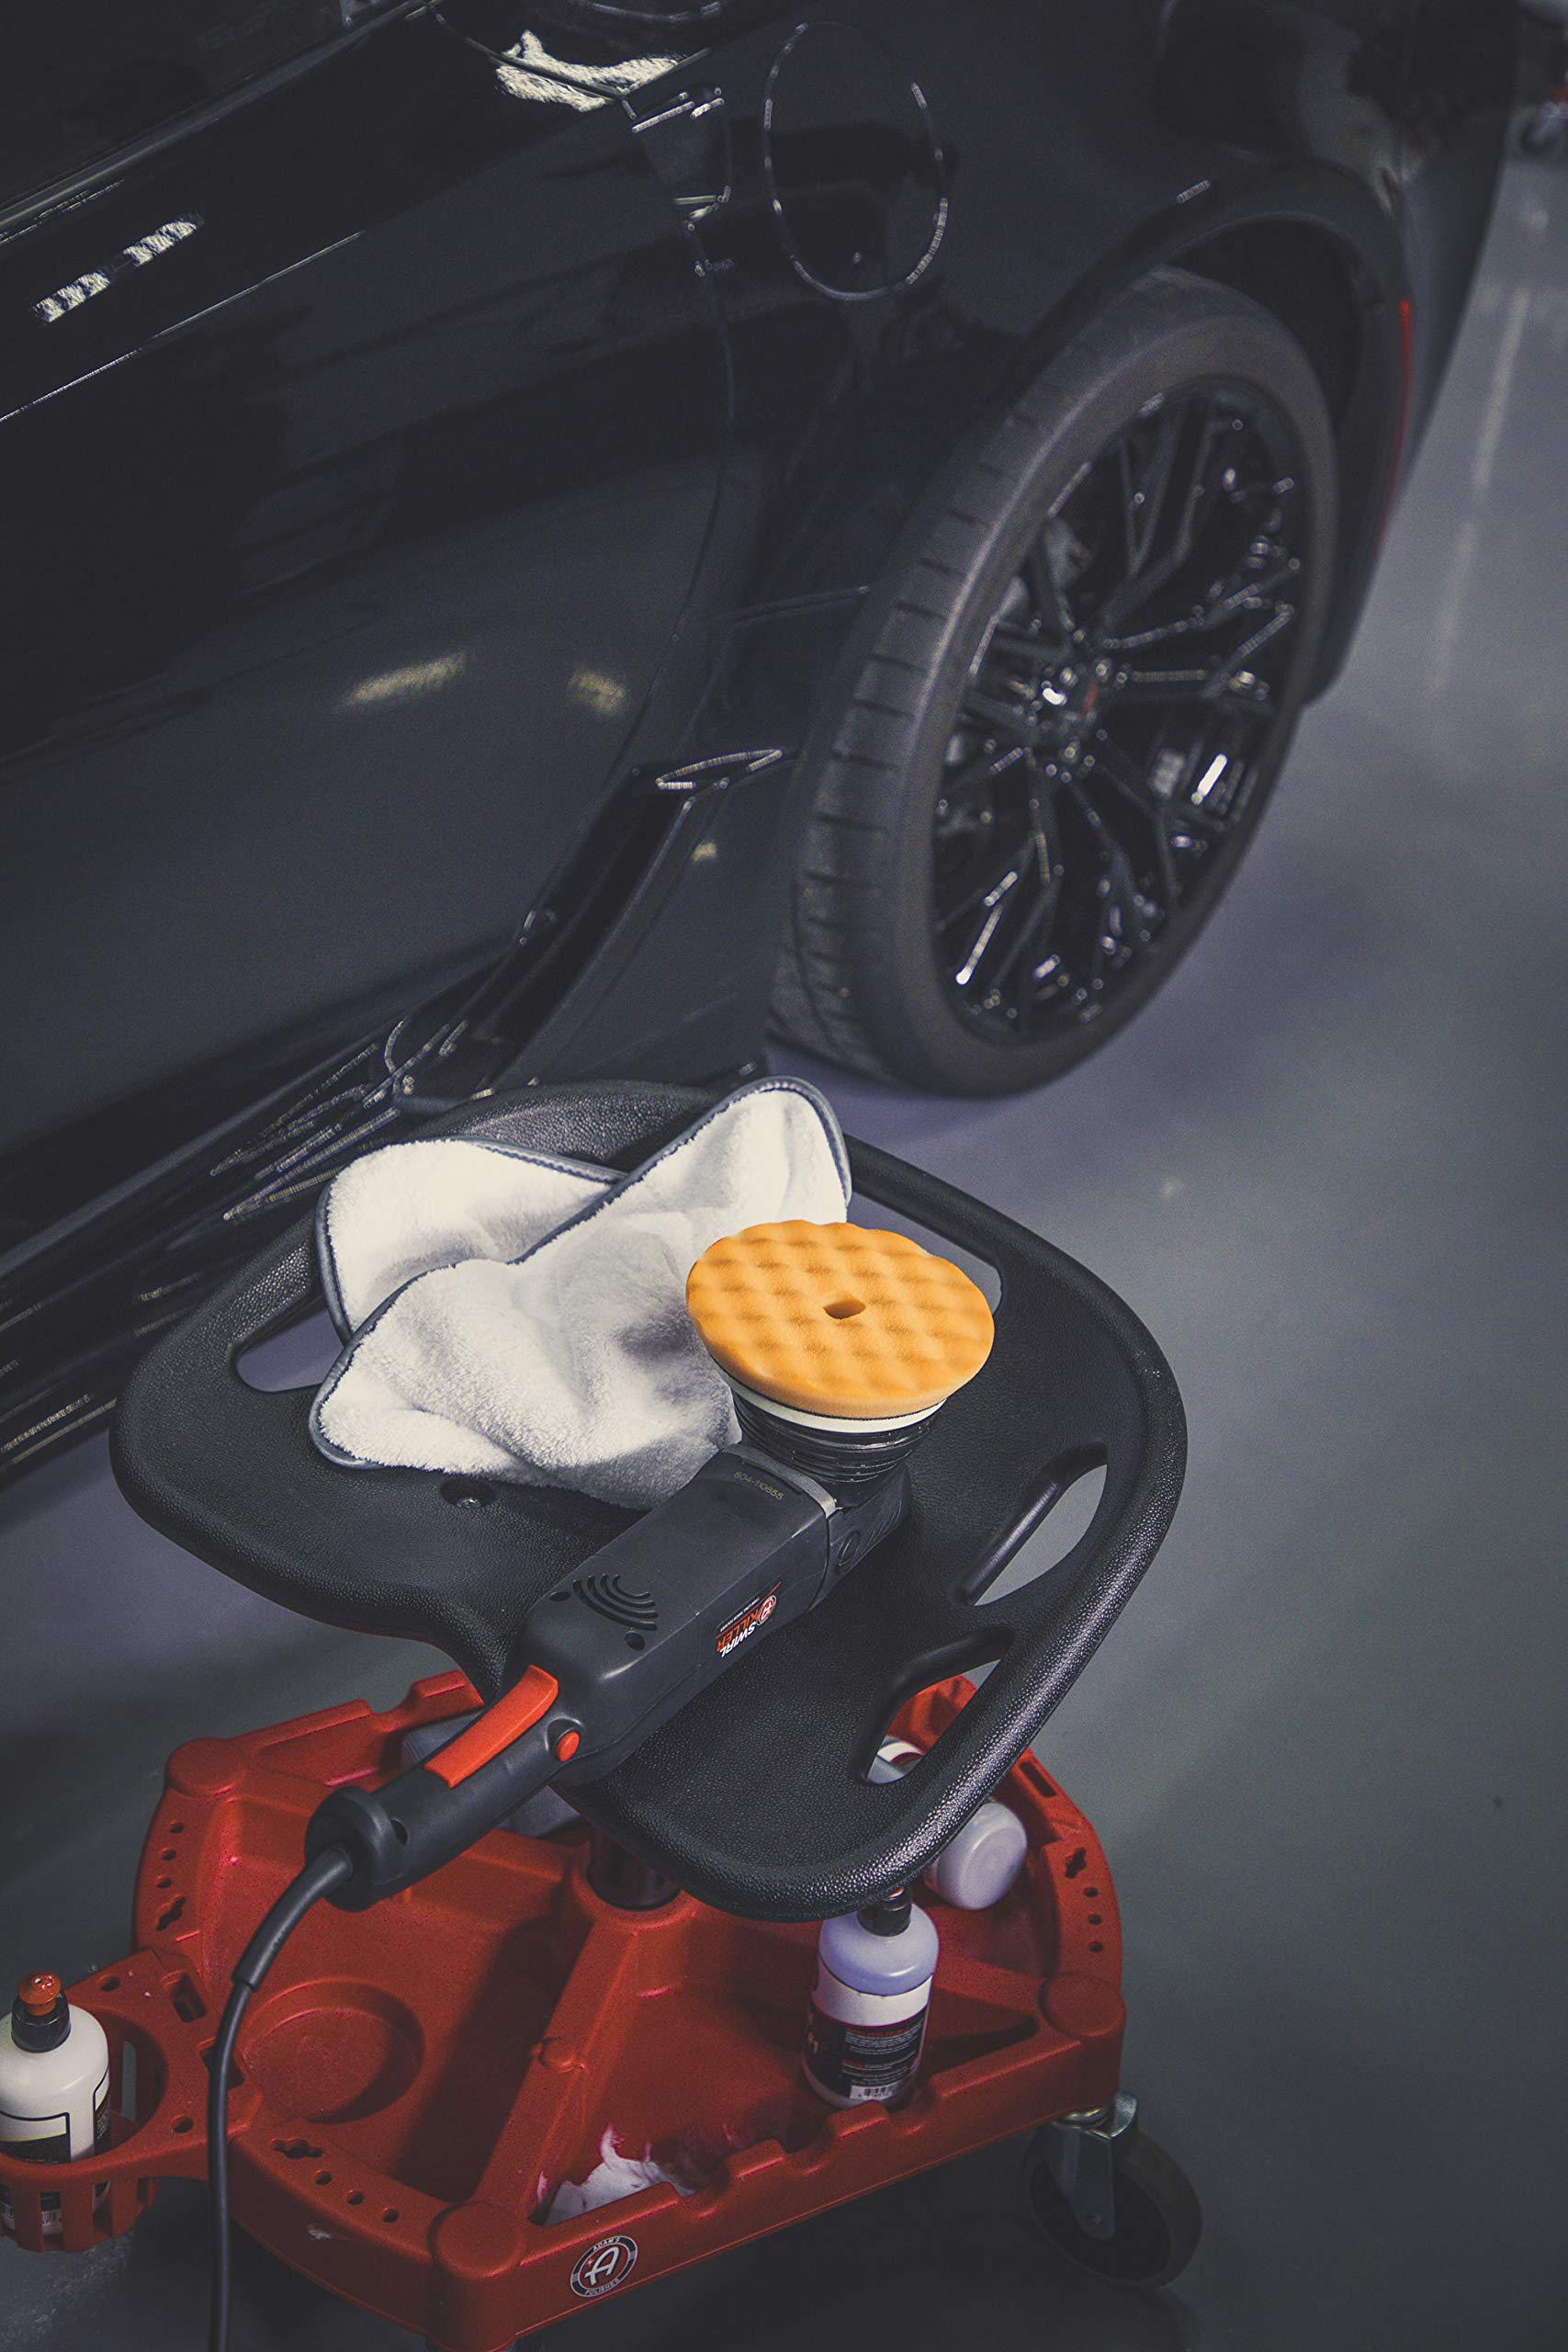 Adam's ProStool Detailing Creeper - Ergonomically Designed for Comfort and Functionality - Adjustable Height and Heavy Duty Rolling Wheels - Comfortably Detail or Paint Correct Any Vehicle by Adam's Polishes (Image #5)